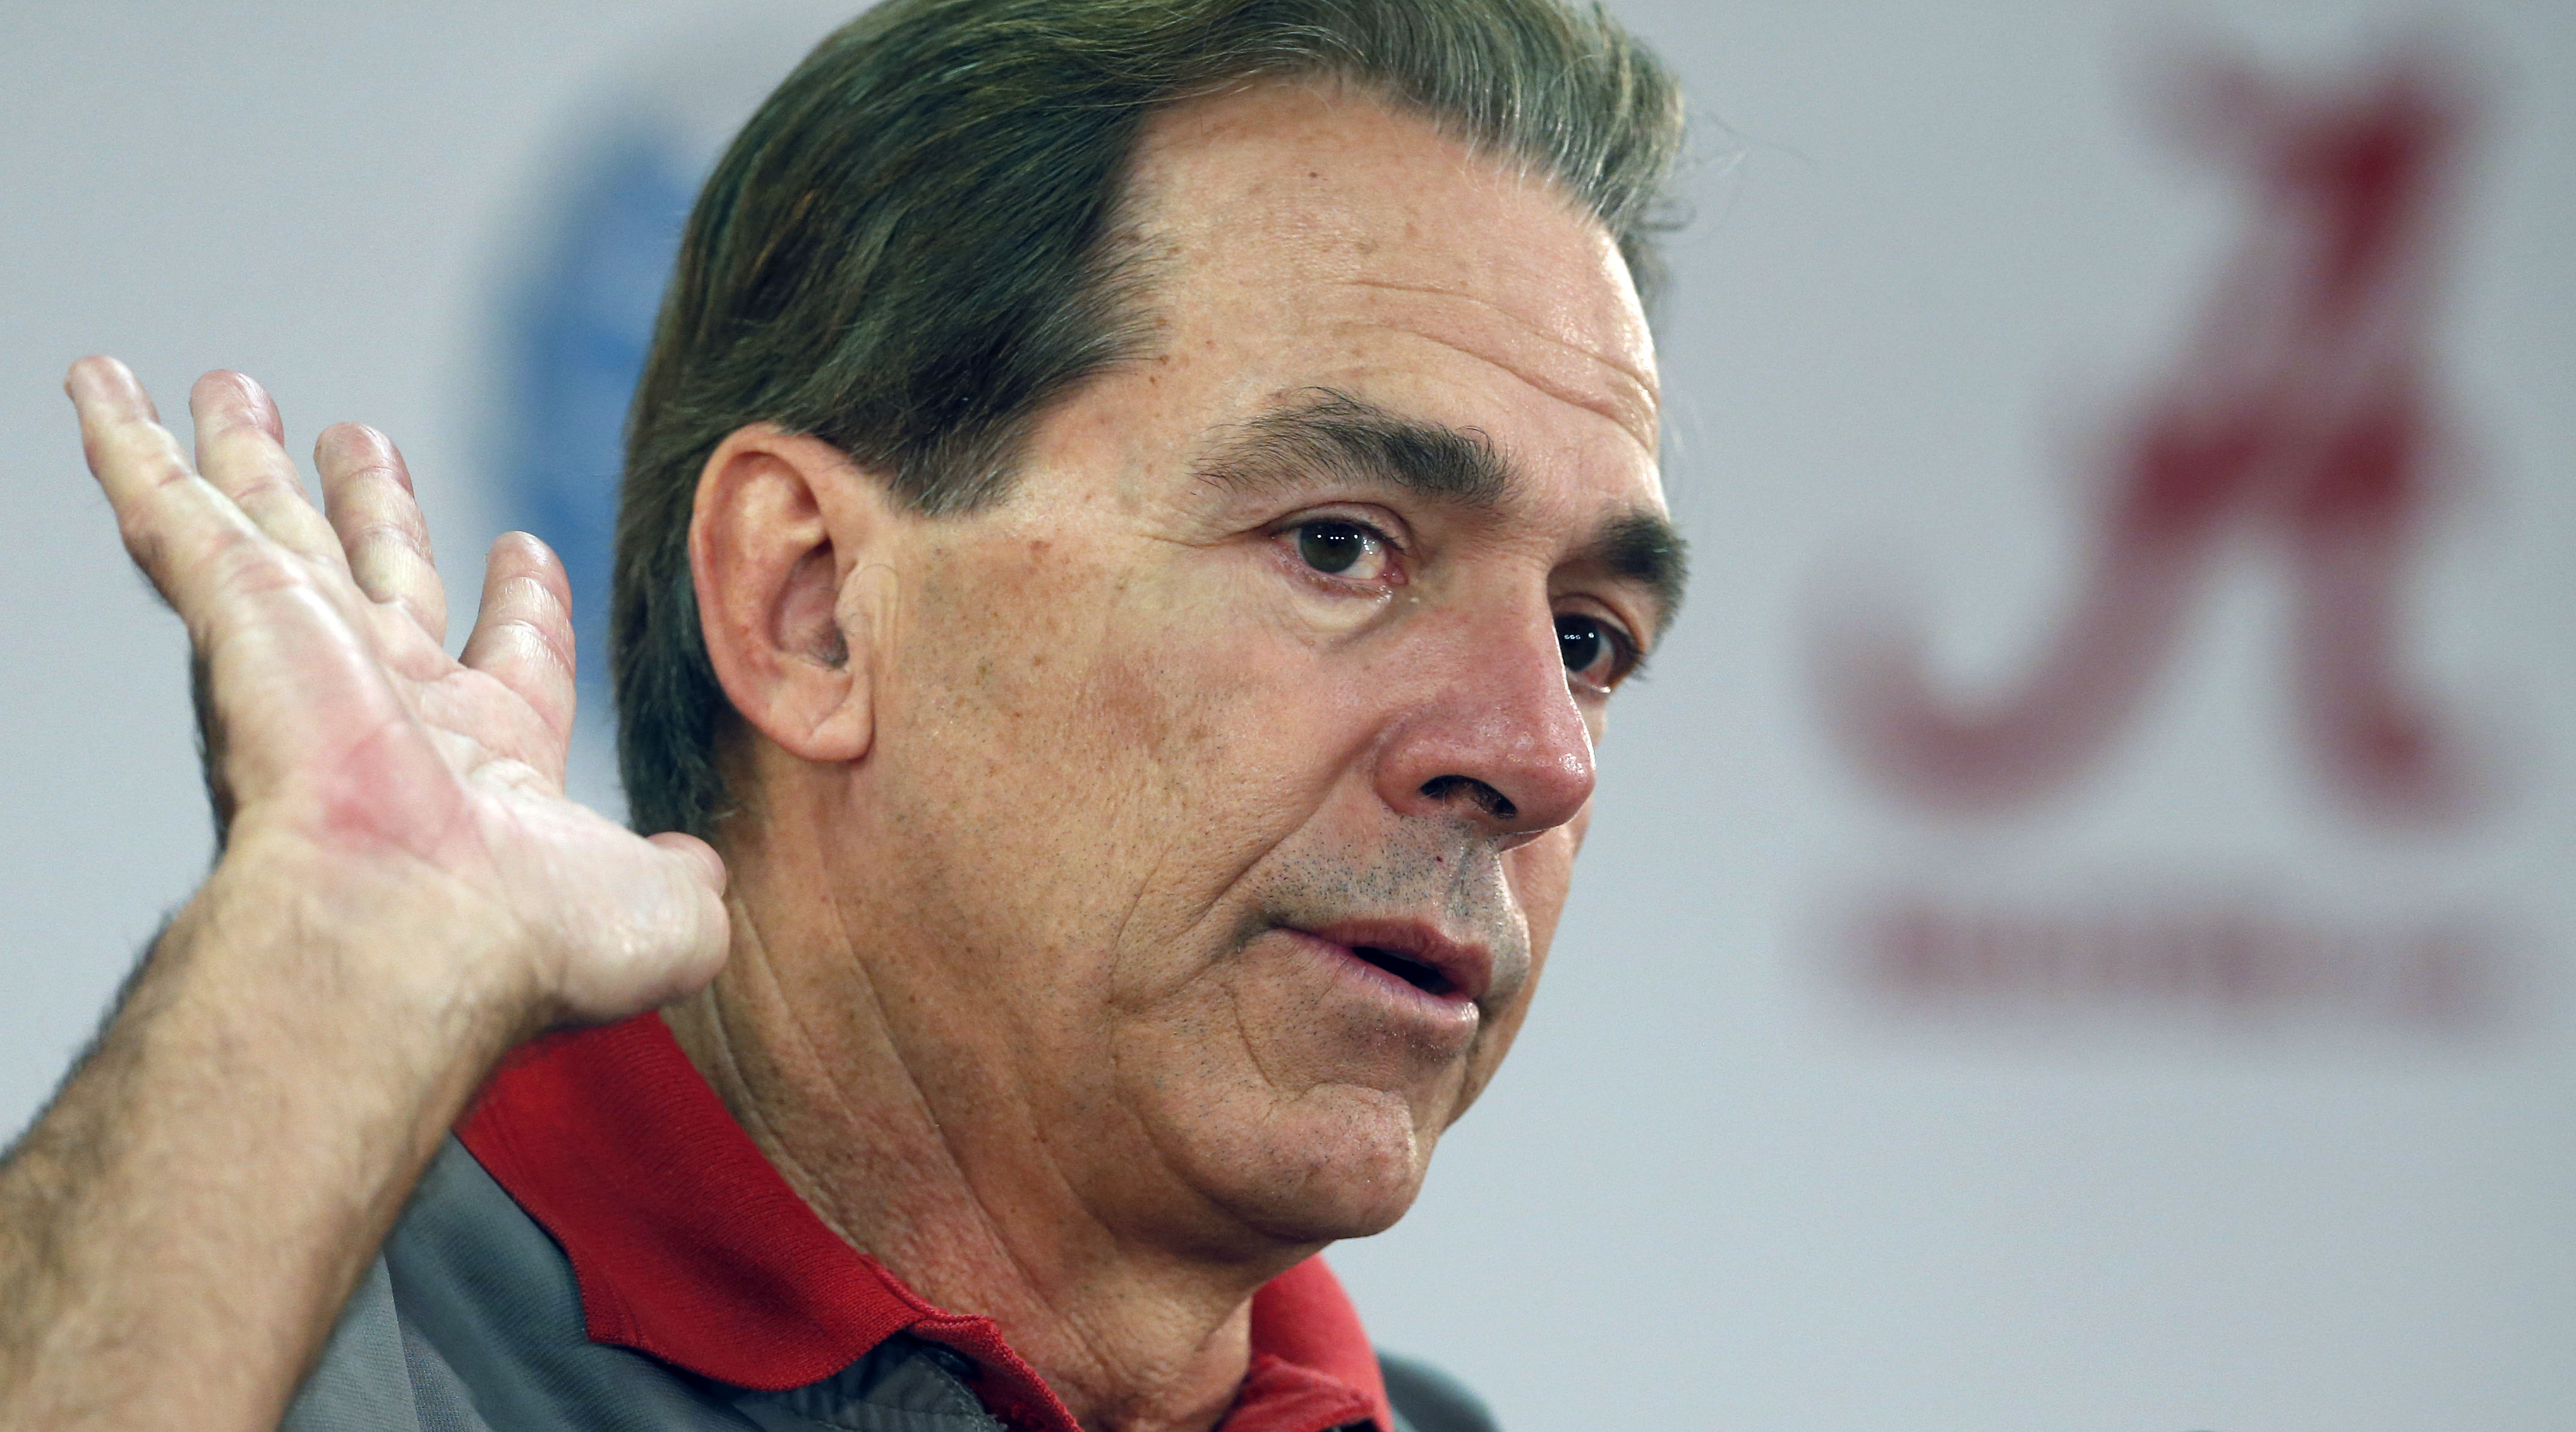 Alabama head coach Nick Saban speaks to the media in preparation for the Cotton Bowl NCAA college football game, Monday, Dec. 21, 2015, in Tuscaloosa, Ala. (AP Photo/Butch Dill)